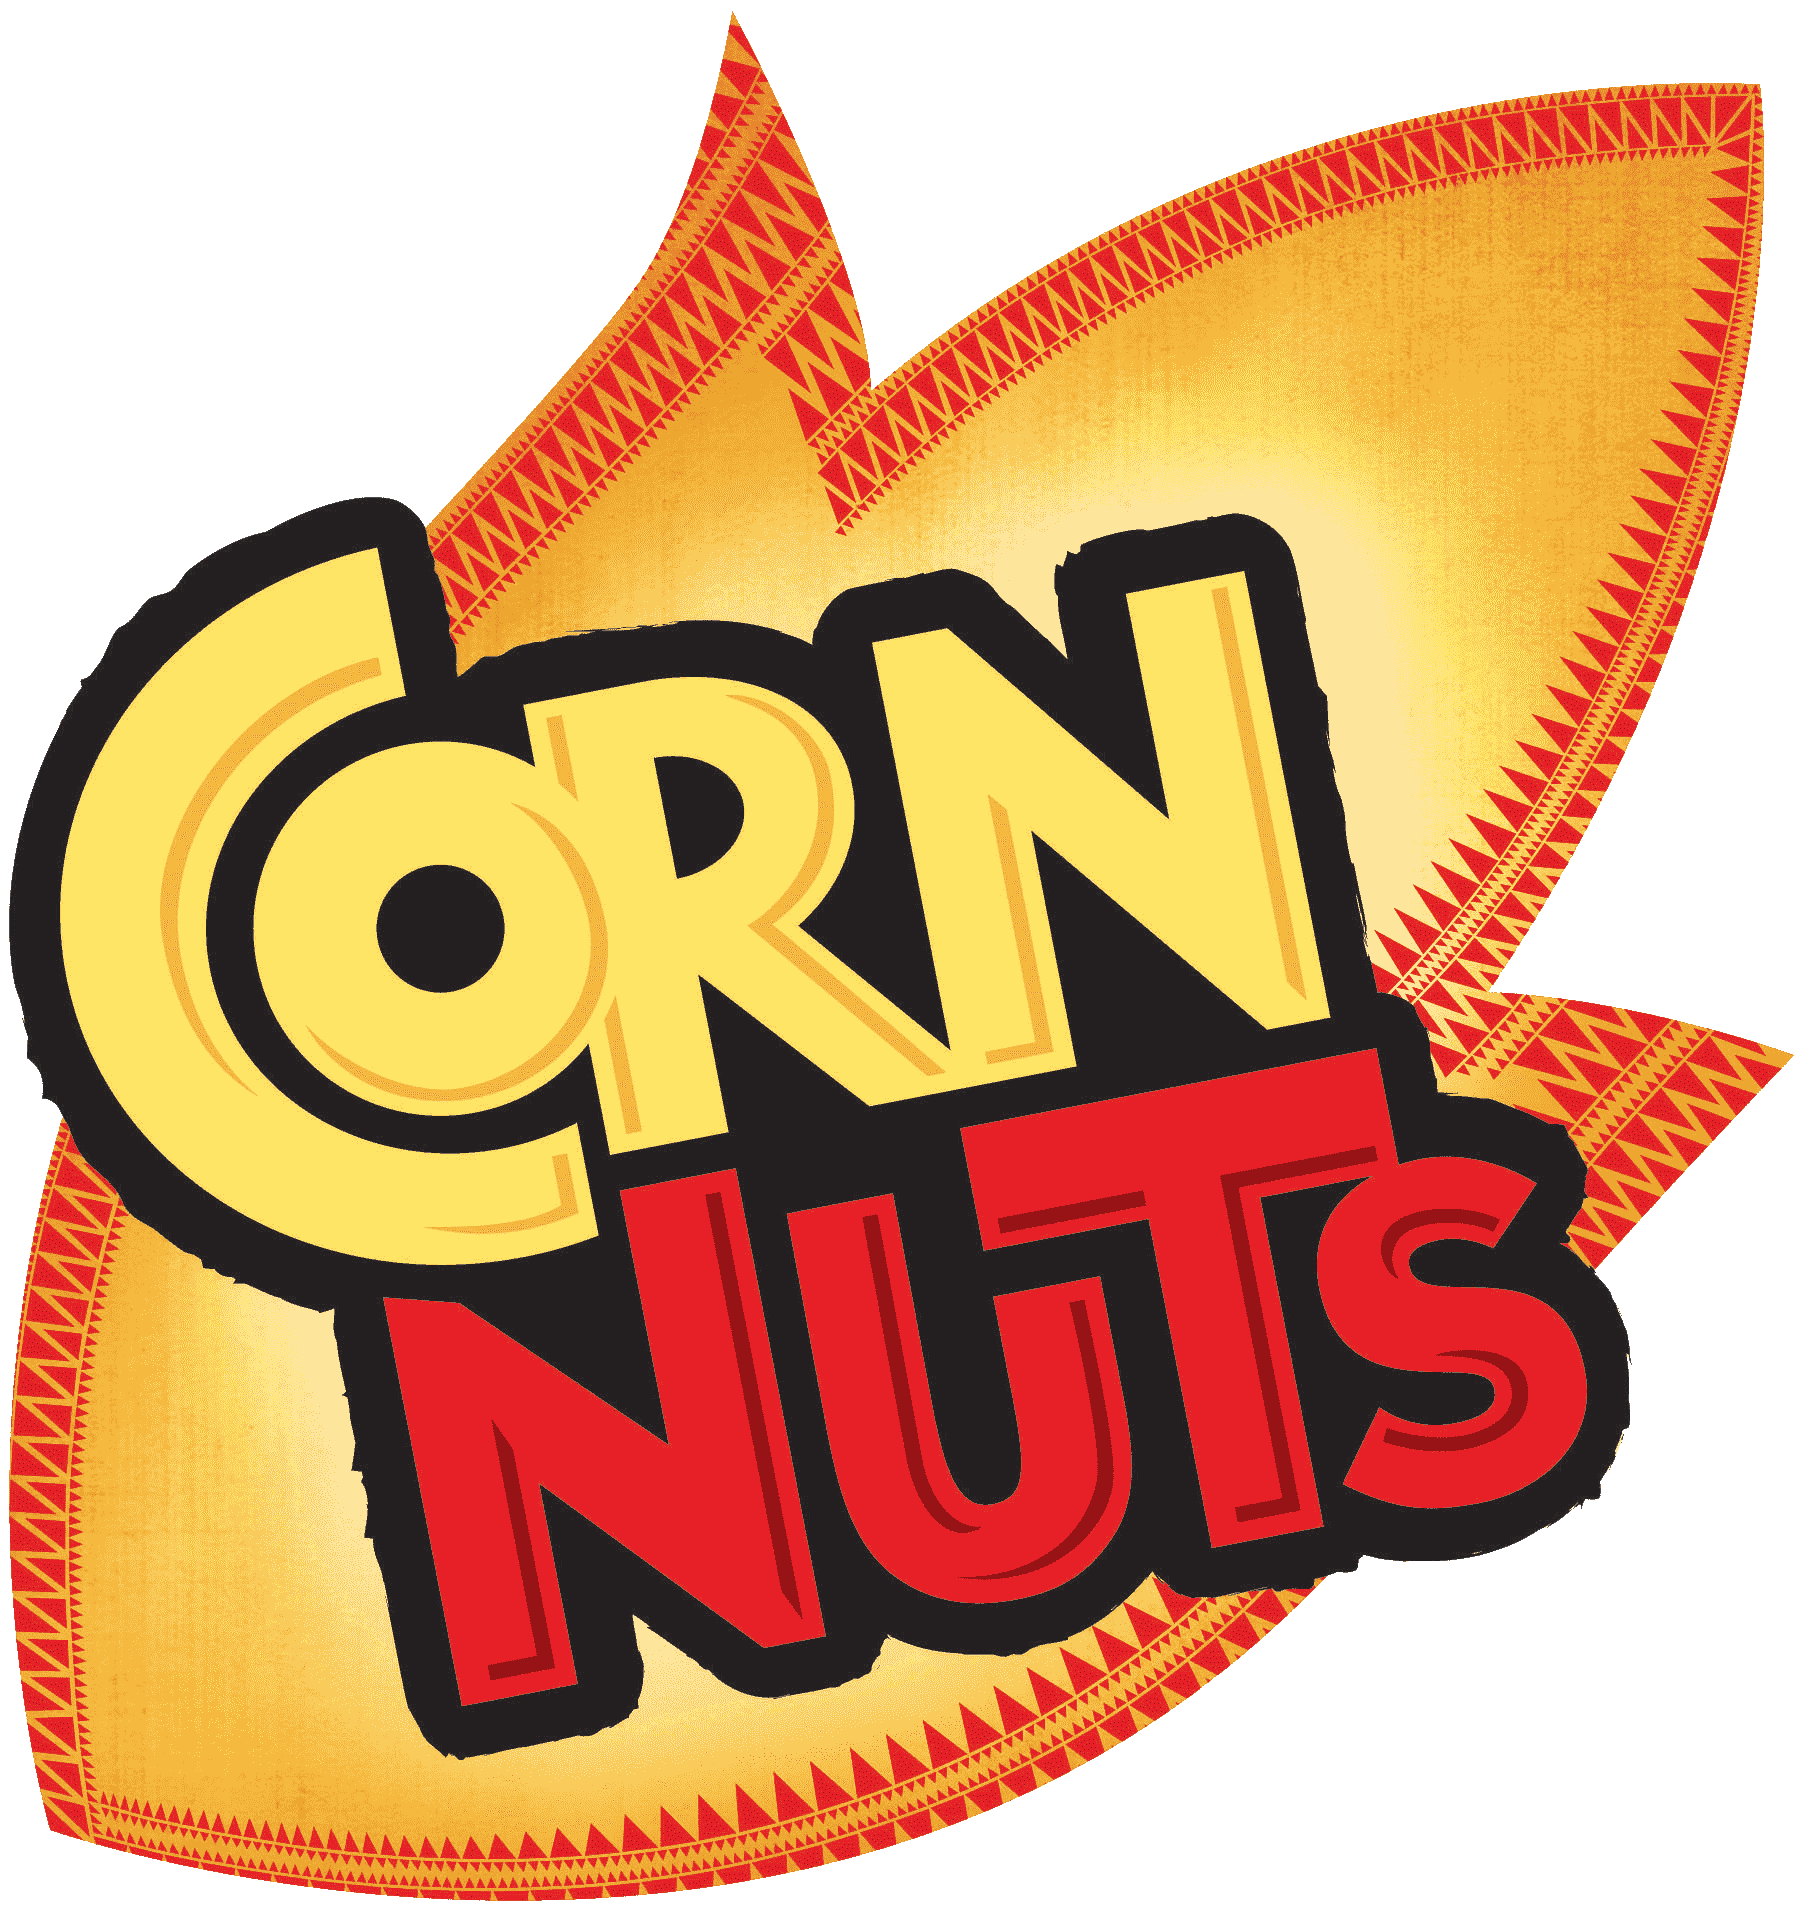 CORN NUTS image